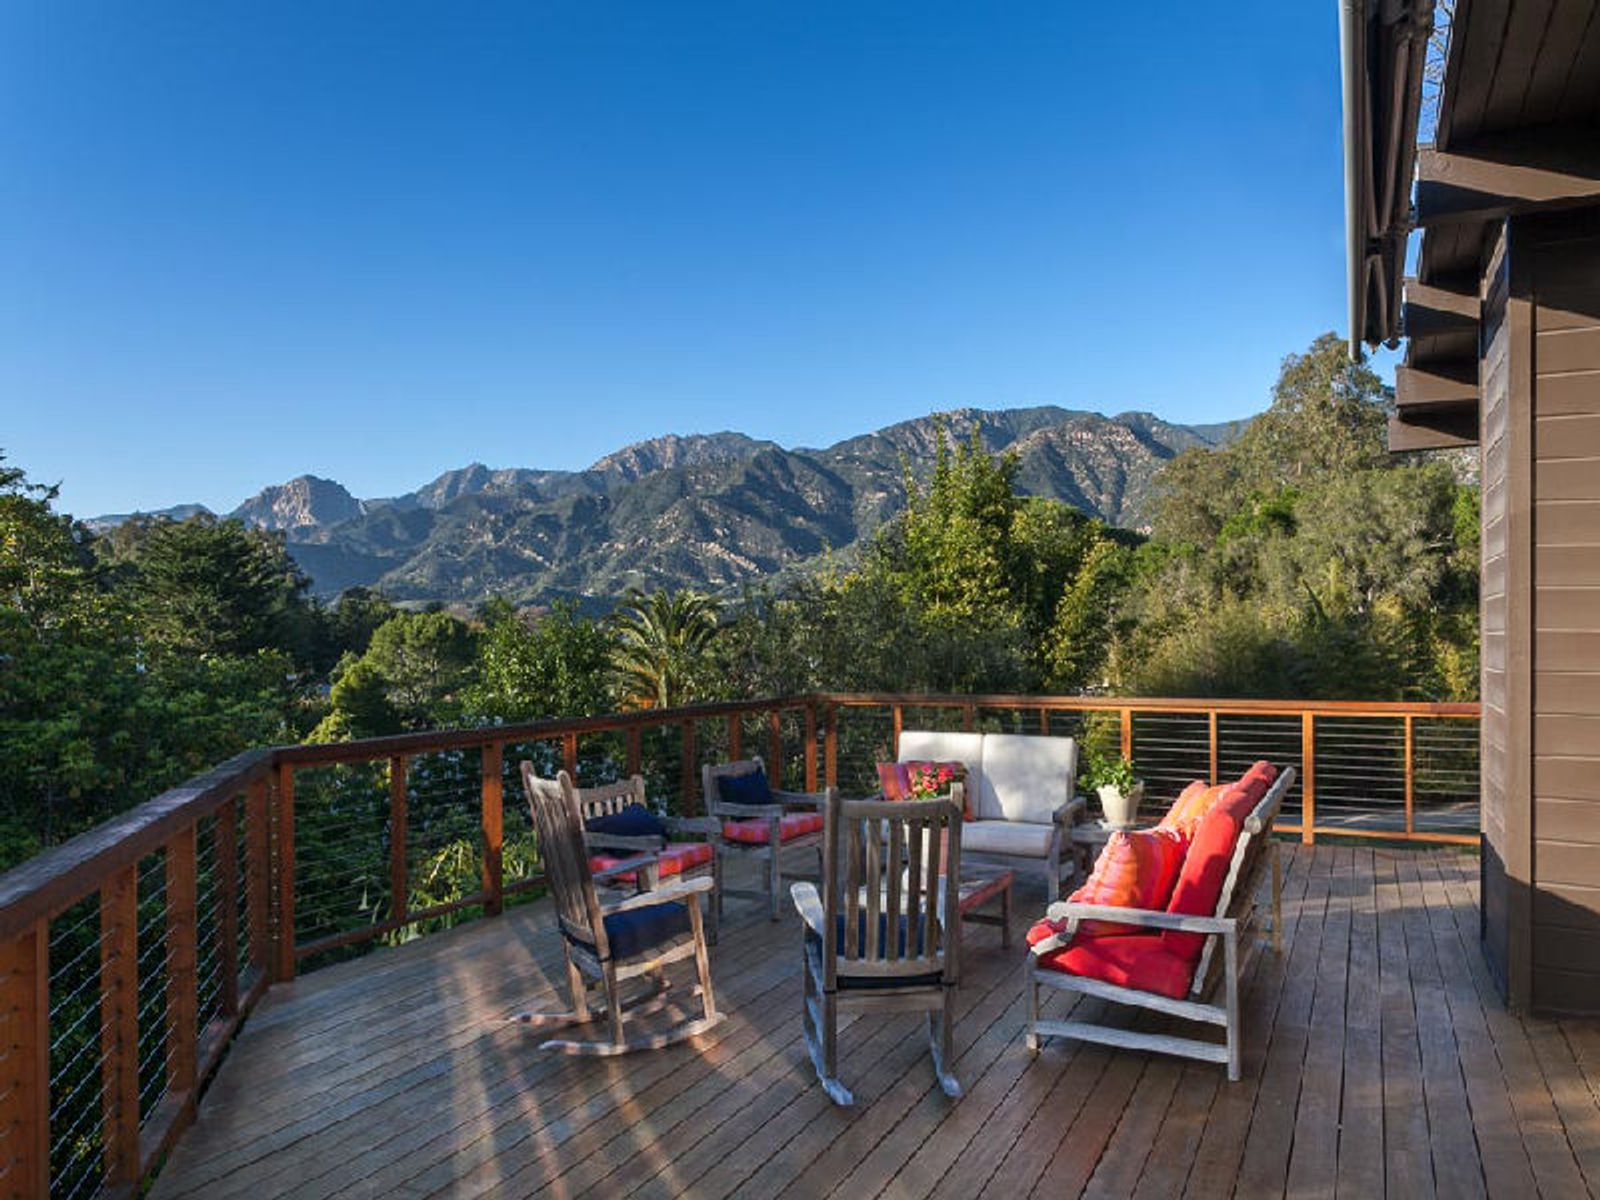 Deck and Gorgeous Mountain View